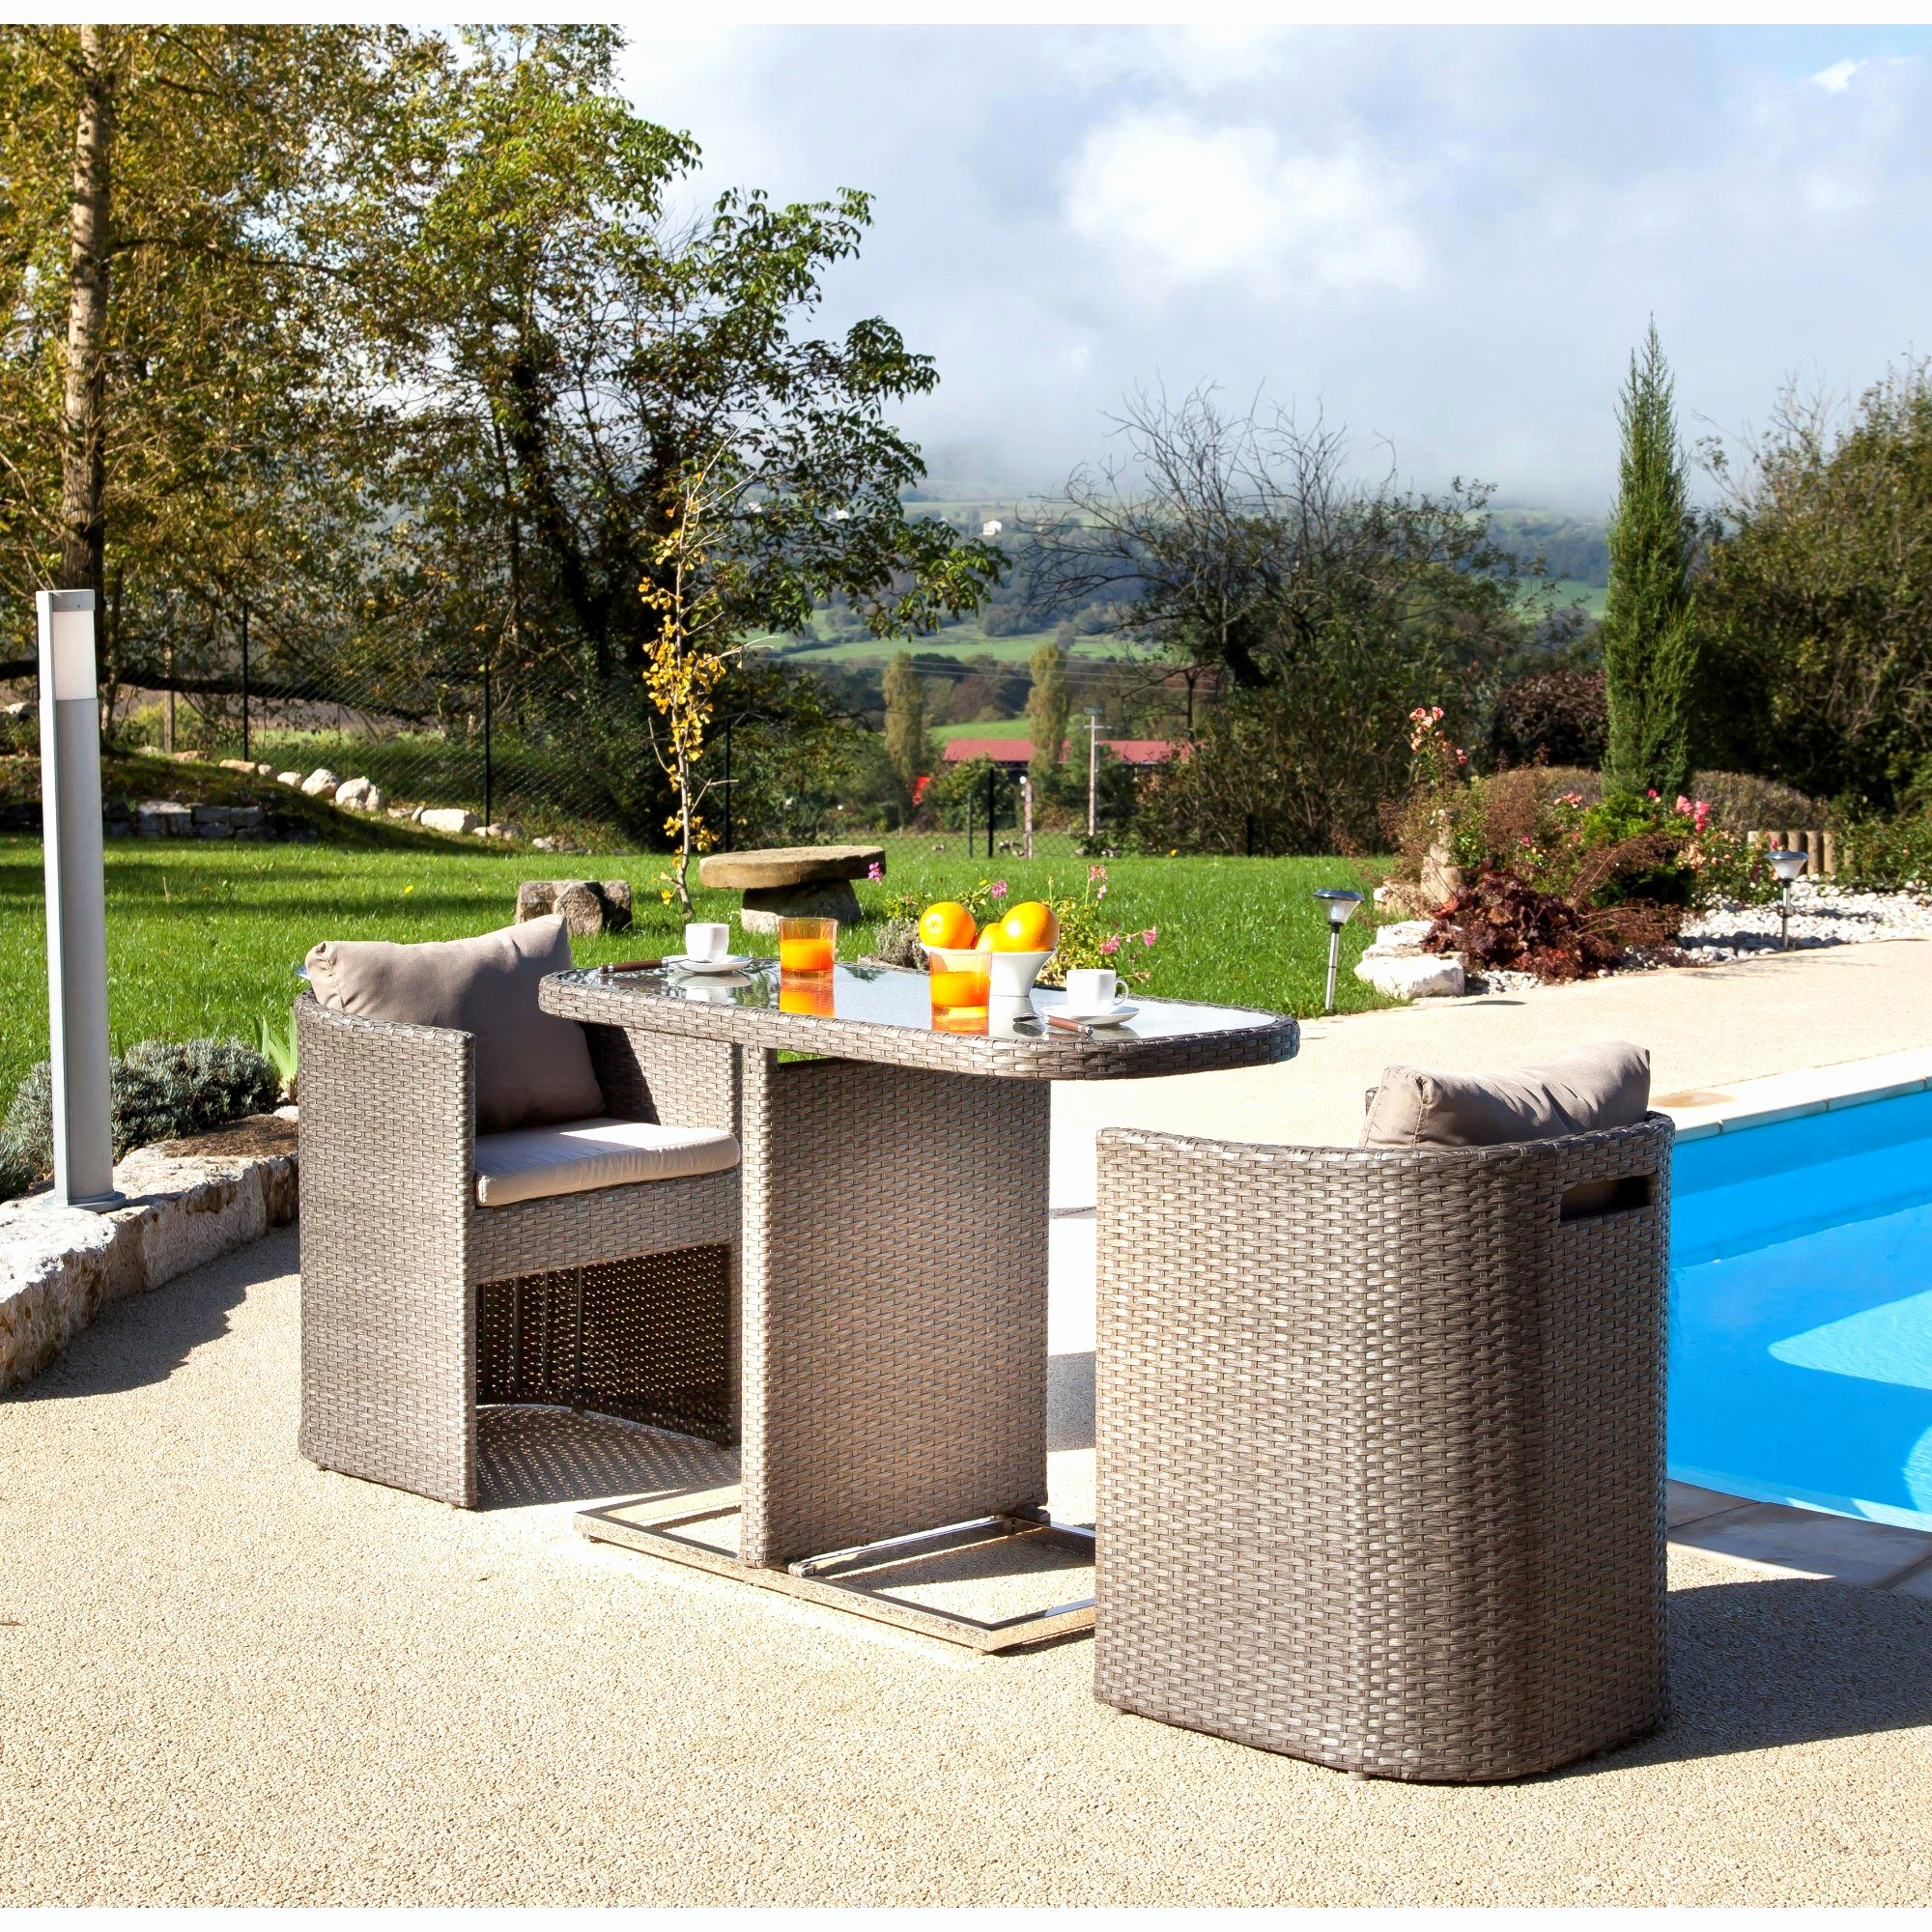 Leroy Merlin Table De Jardin Chalet Leroy Merlin Nouveau Image Table De Jardin Leroy